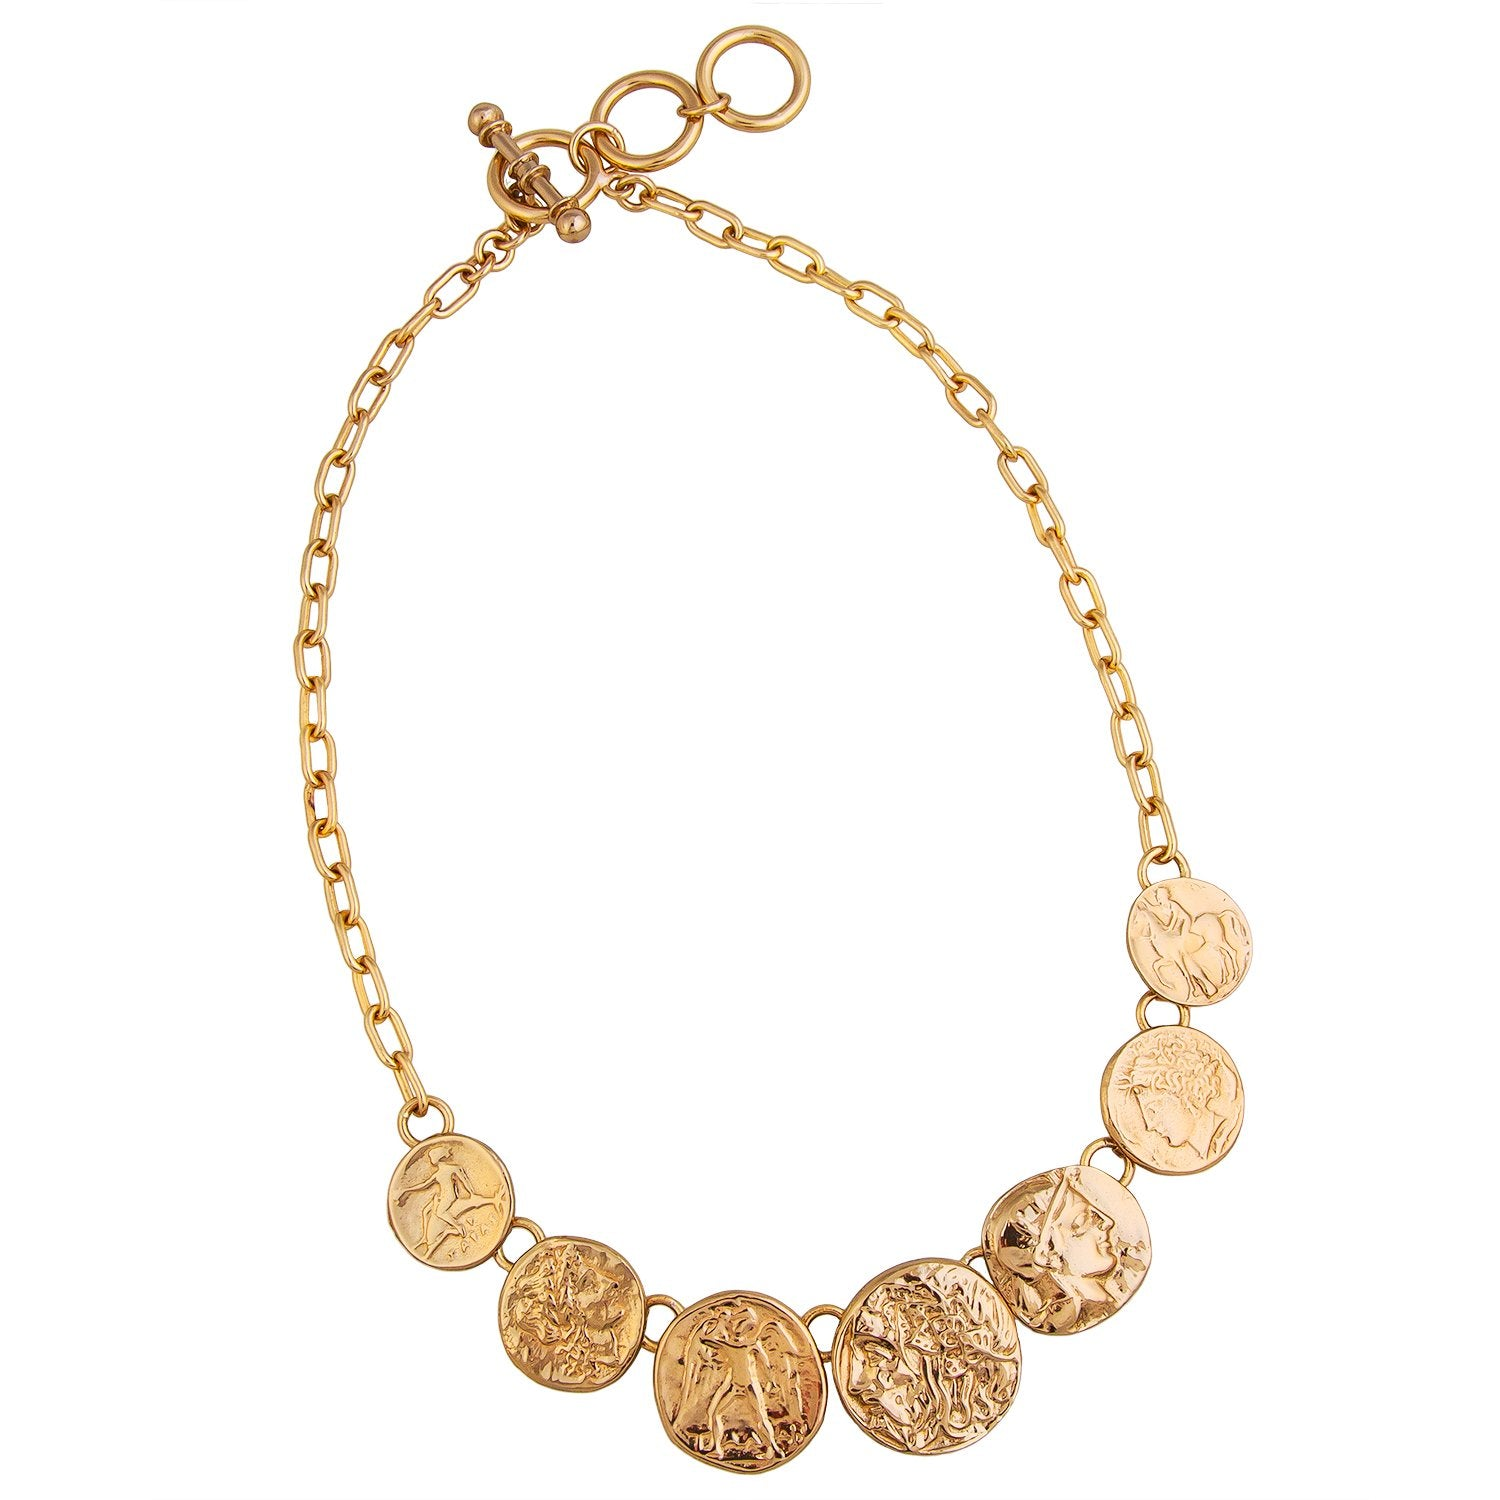 Alchemia Replica Greek Coin Necklace | Charles Albert Jewelry